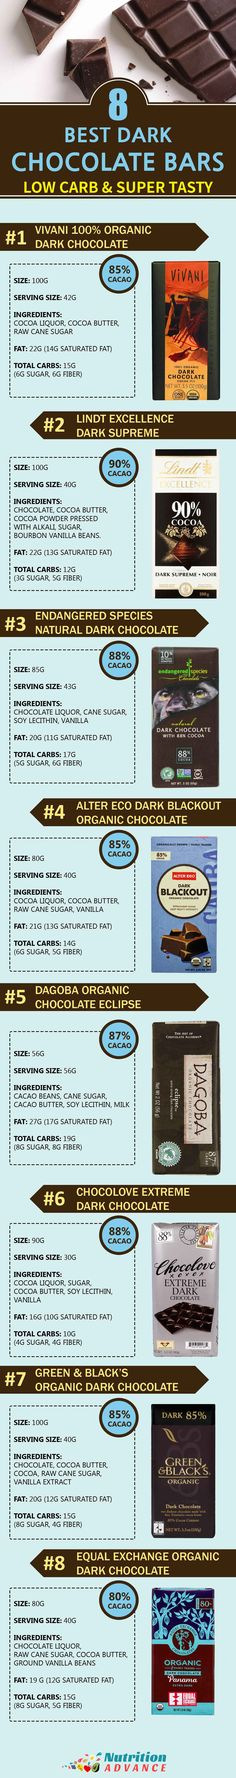 Low Carb Chocolate - here are 8 of the best dark chocolate bars, low in carbs and high in nutrients and taste! Each of these dark chocolate brands produce bars that use real cacao butter, and they are low in additives.